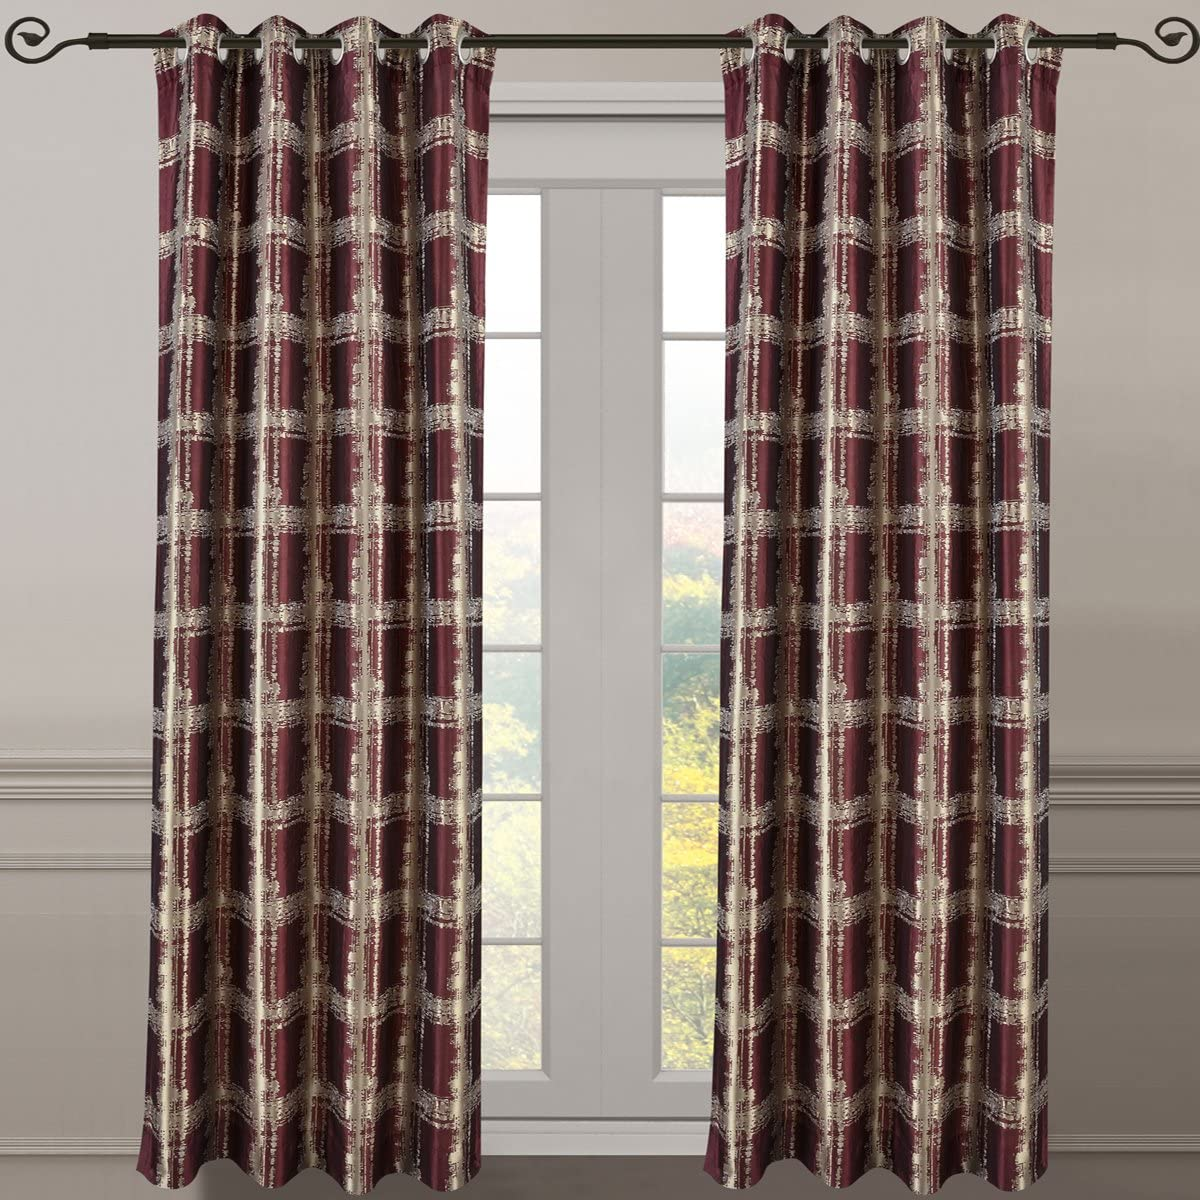 Royal Bedding Studio Burgundy Panels, Top Grommet Abstract Jacquard Textured Window Curtain Panel, Set of 2 Panels, 52×108 Inches Each